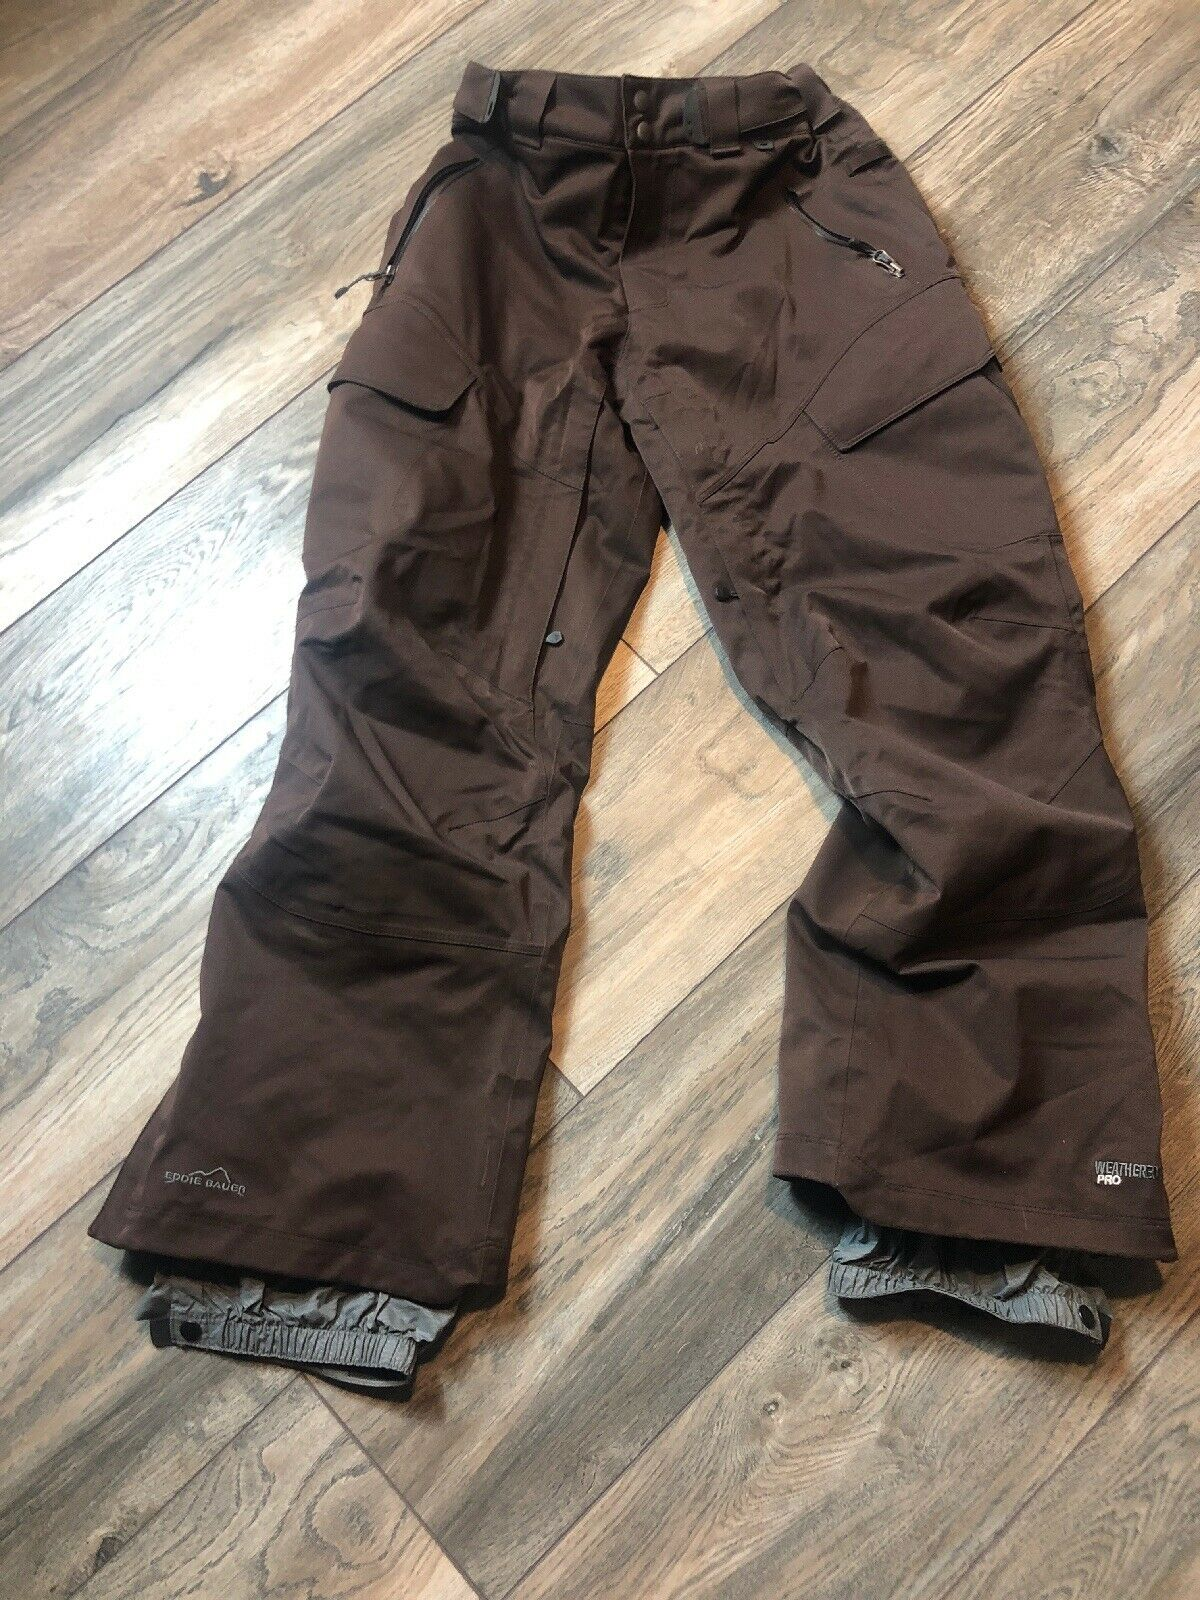 MenS Eddie Bauer Lot Weather Edge Pro Snowboard Pants braun Sz S Excellent Item